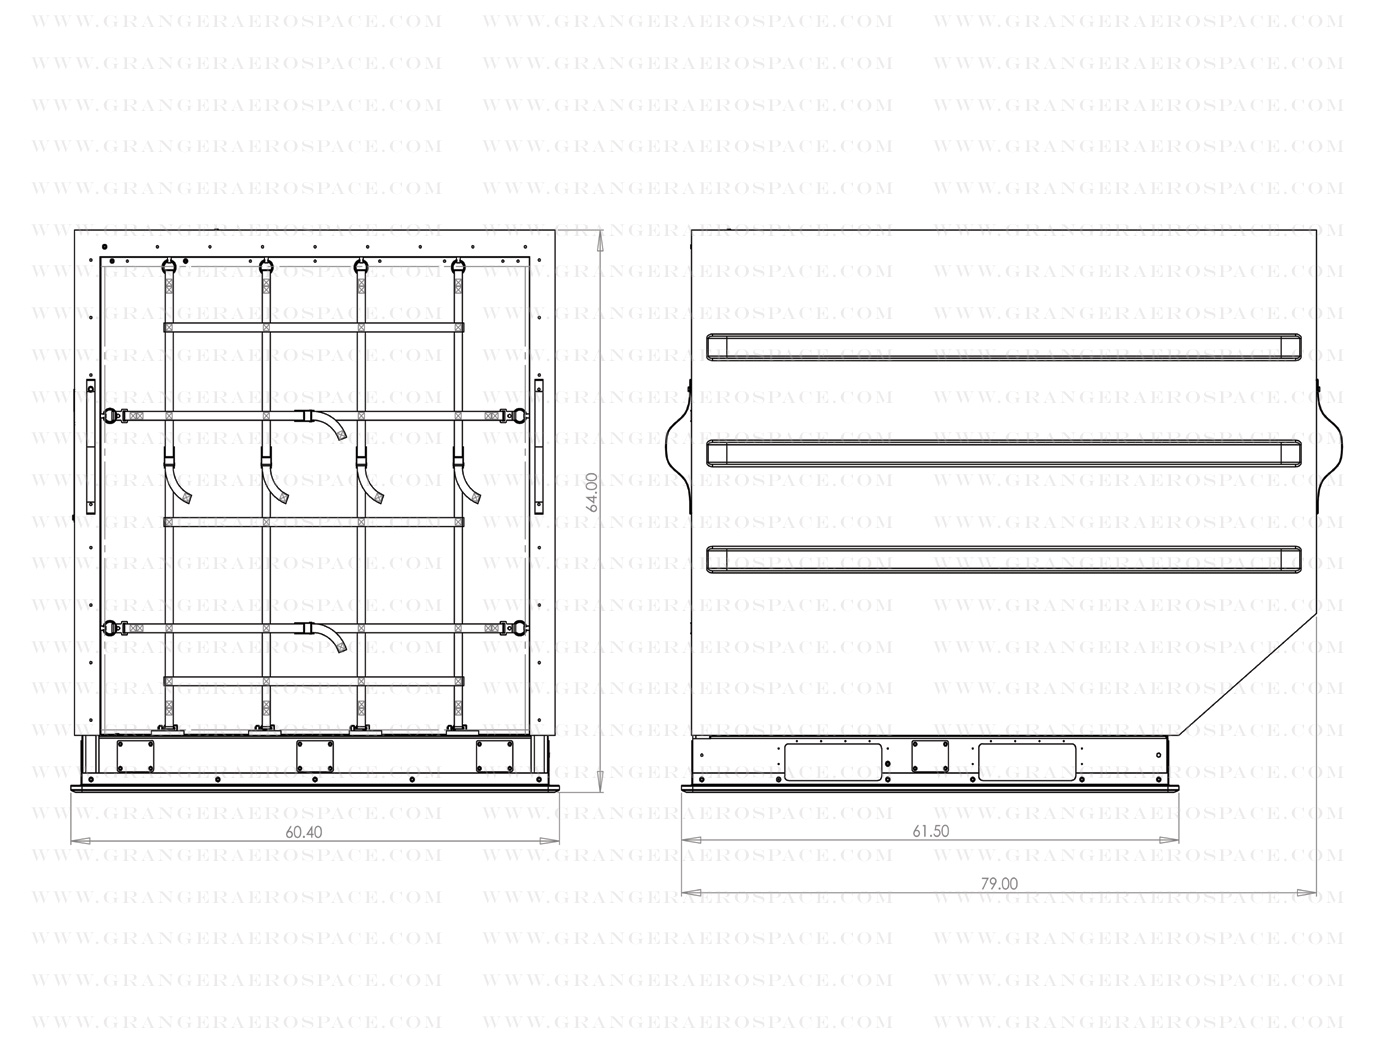 LD 3 Dimensions, LD 3 Air Cargo Container Dimensions, AKN dimensions